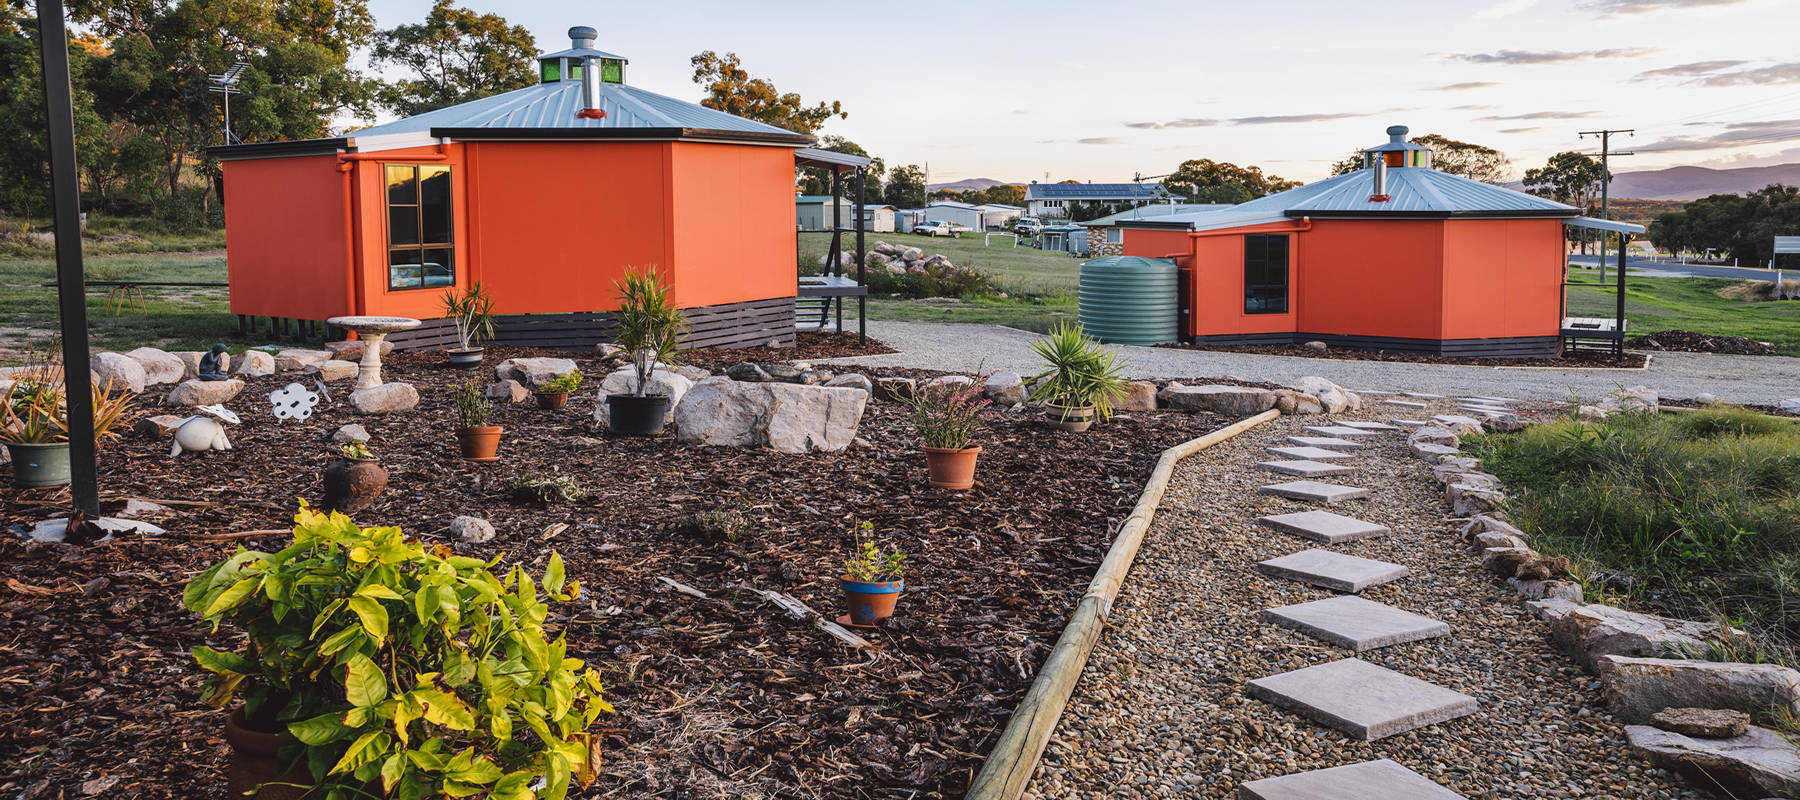 Yurt rental accommodation